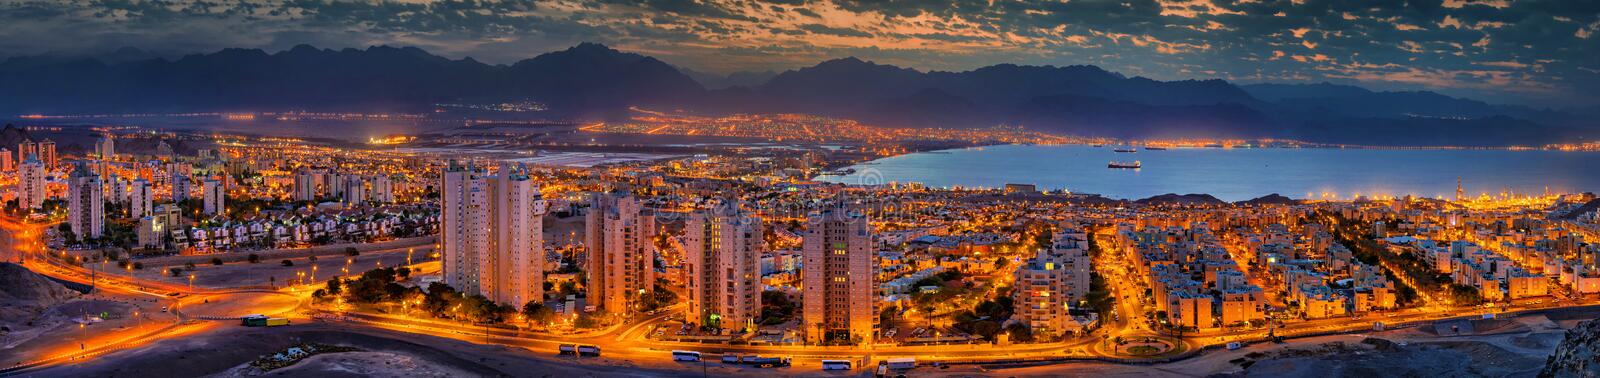 Panoramic view on the Gulf of Aqaba and cities -Eilat and Aqaba. The image was taken from the hills of Eilat stock photo